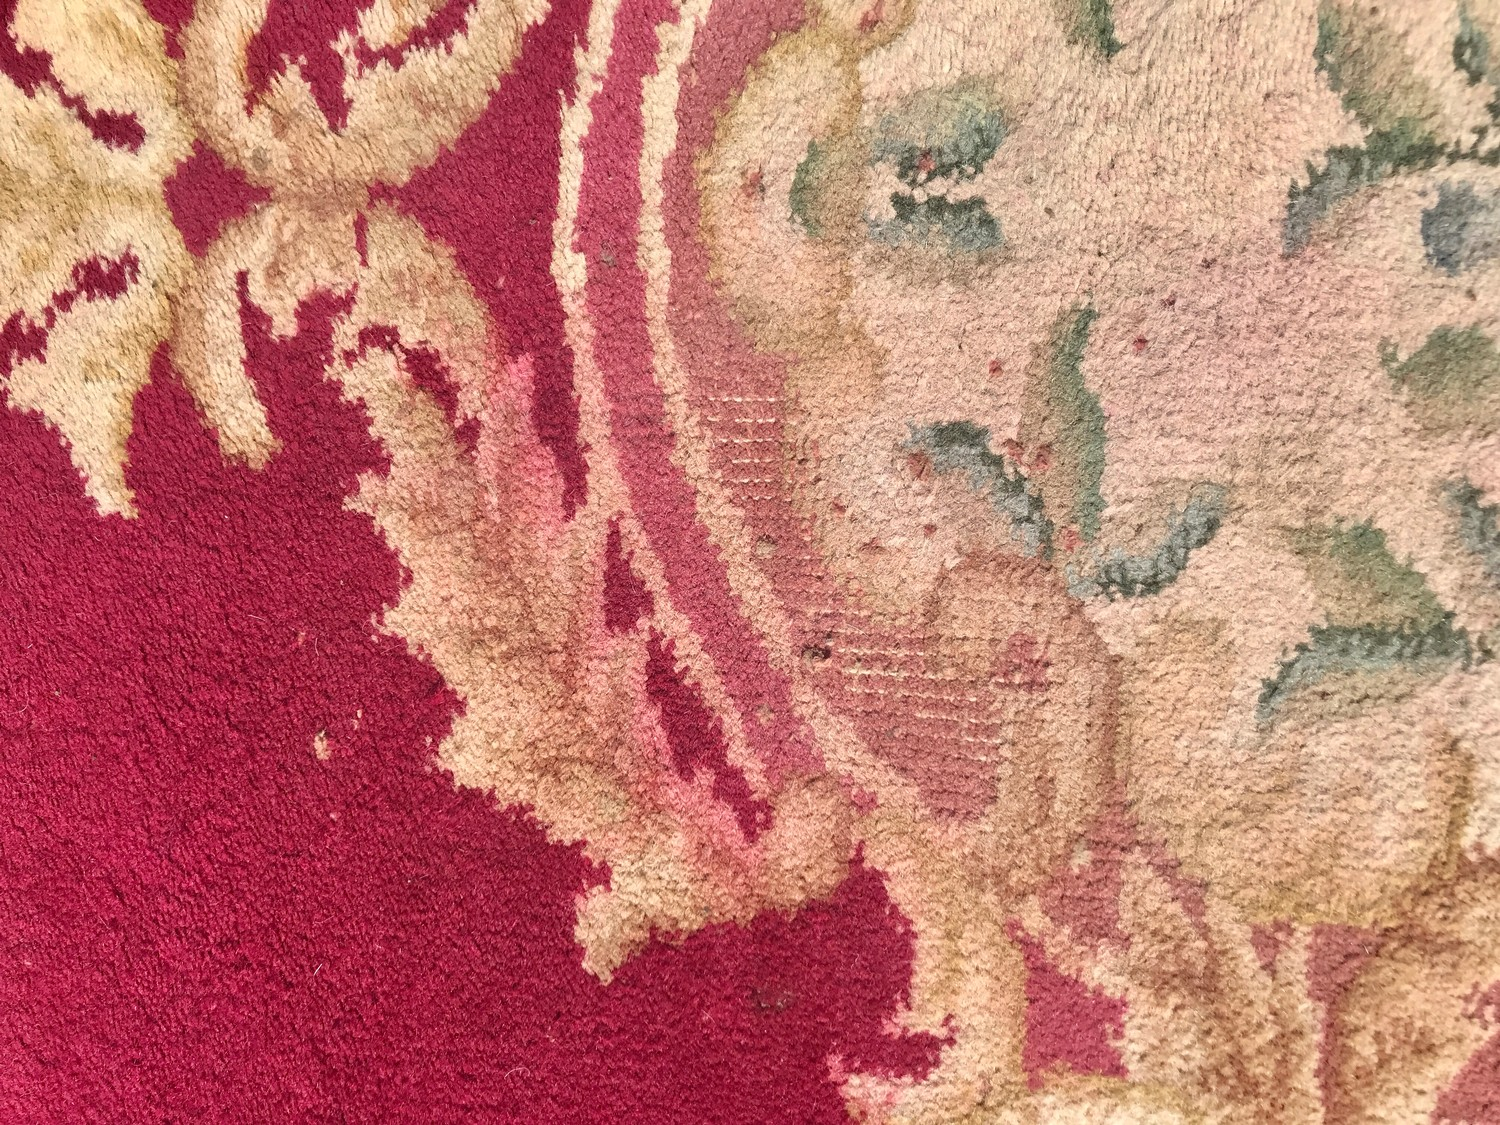 """Large rug measures approx 125"""" long by 110"""" wide has a few ware marks - Image 3 of 3"""